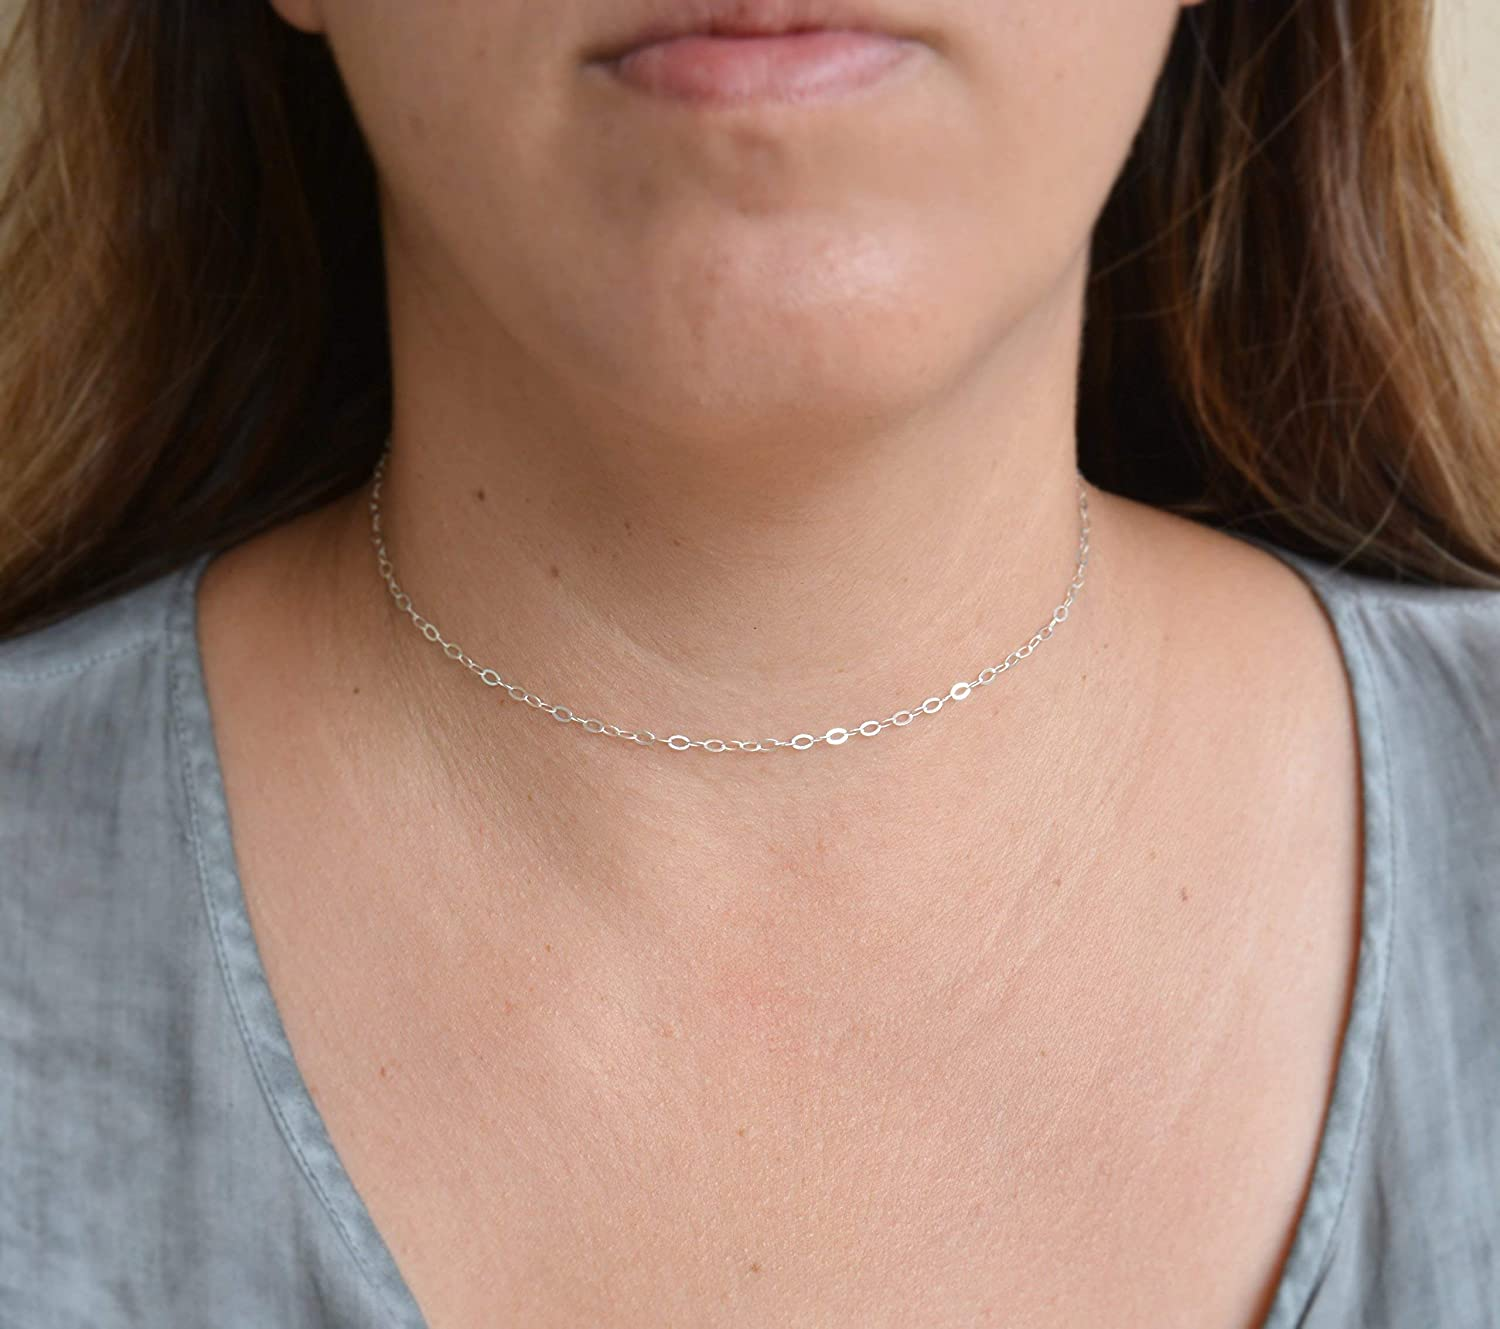 Limited time for free shipping Silver choker necklace thin minimal dainty 70% OFF Outlet simple